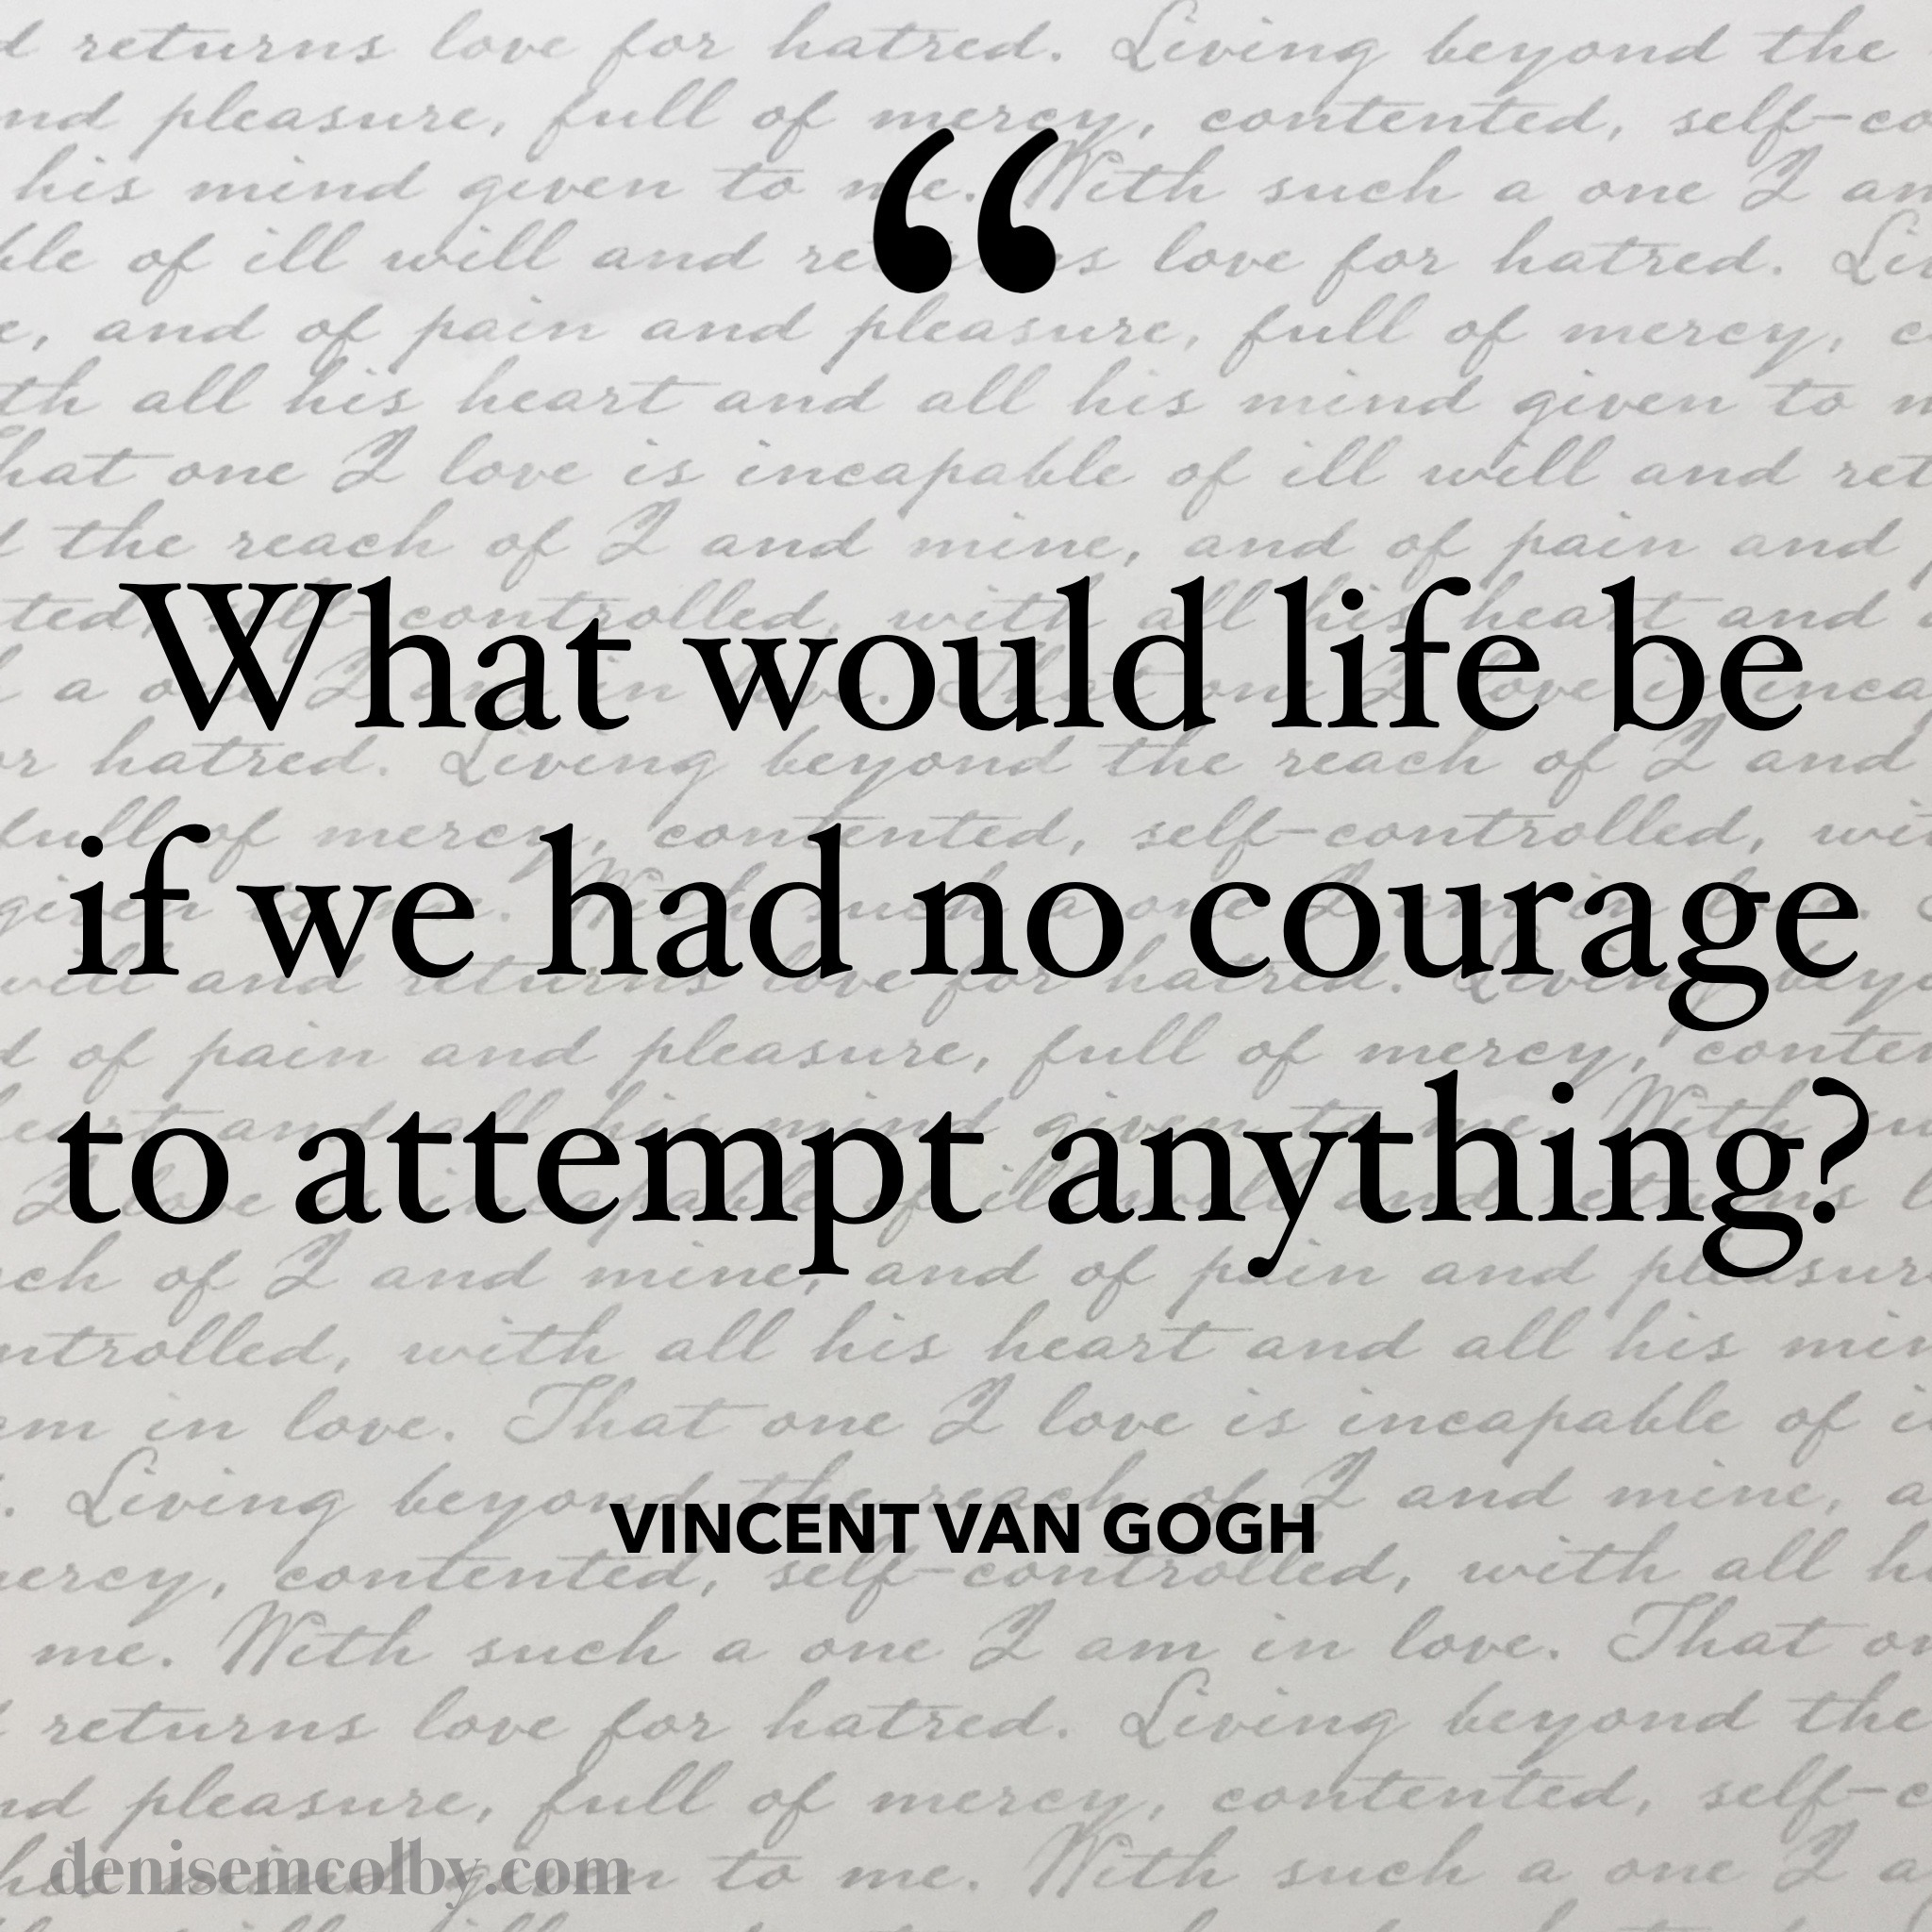 Vincent Van Gogh Quote What would life be if we had no courage to attempt anything? with cursive writing in the background